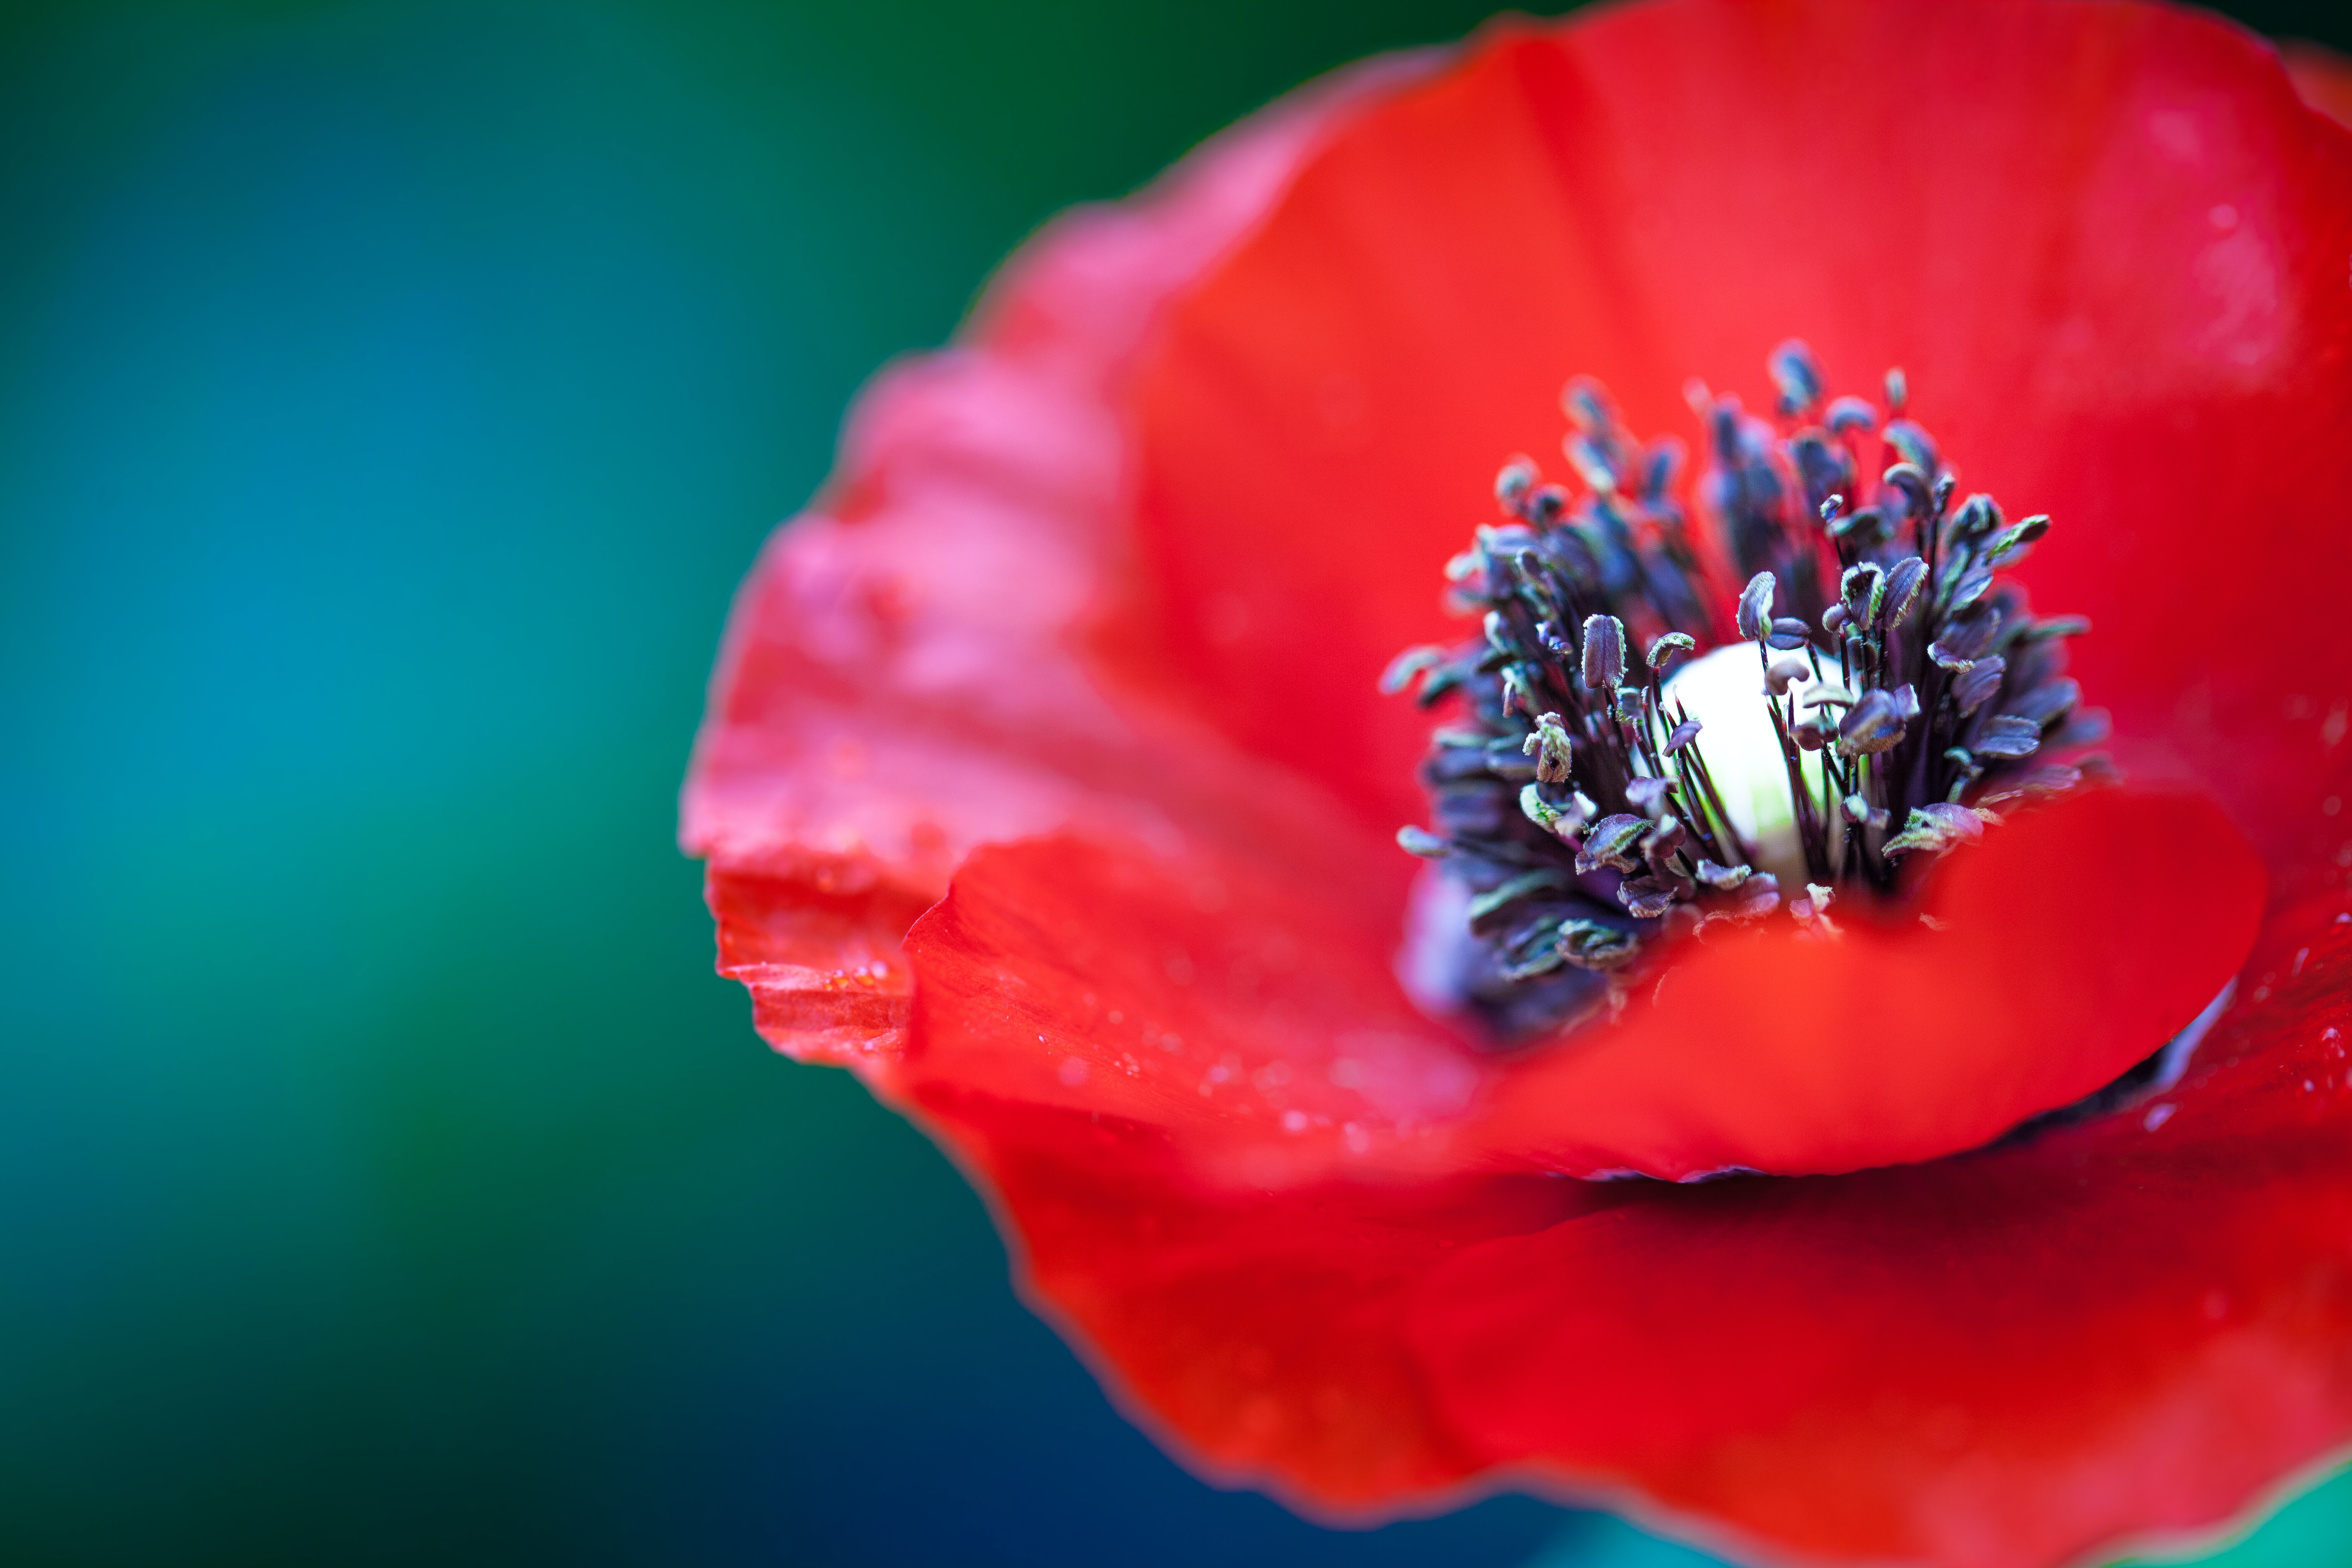 selective focus photography of red petaled flower